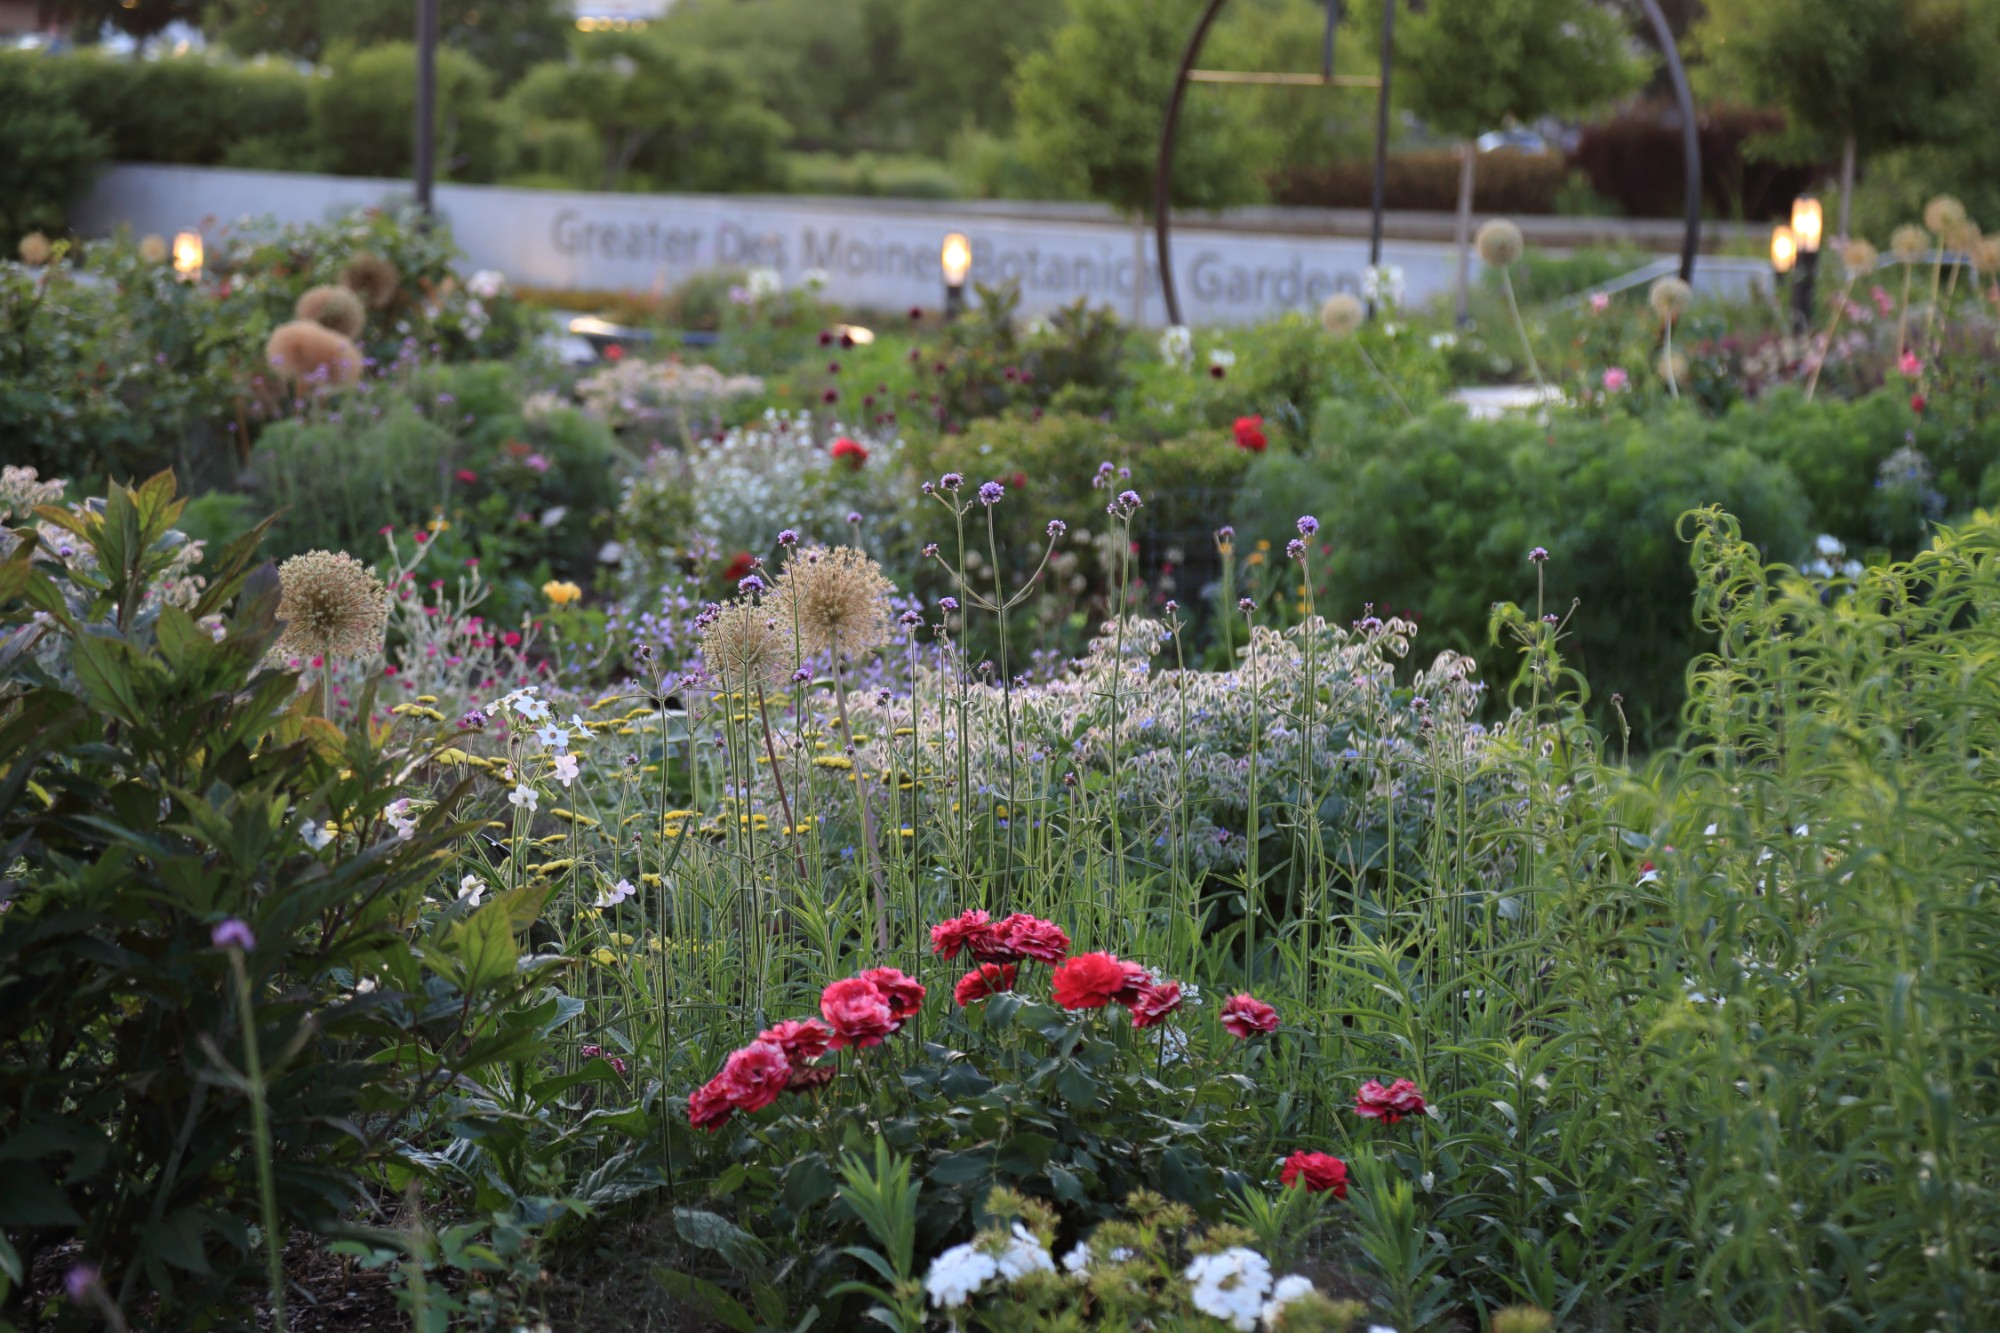 The Wells Fargo Rose Garden glowing in the evening light on June 18. Photo by Kelly Norris.